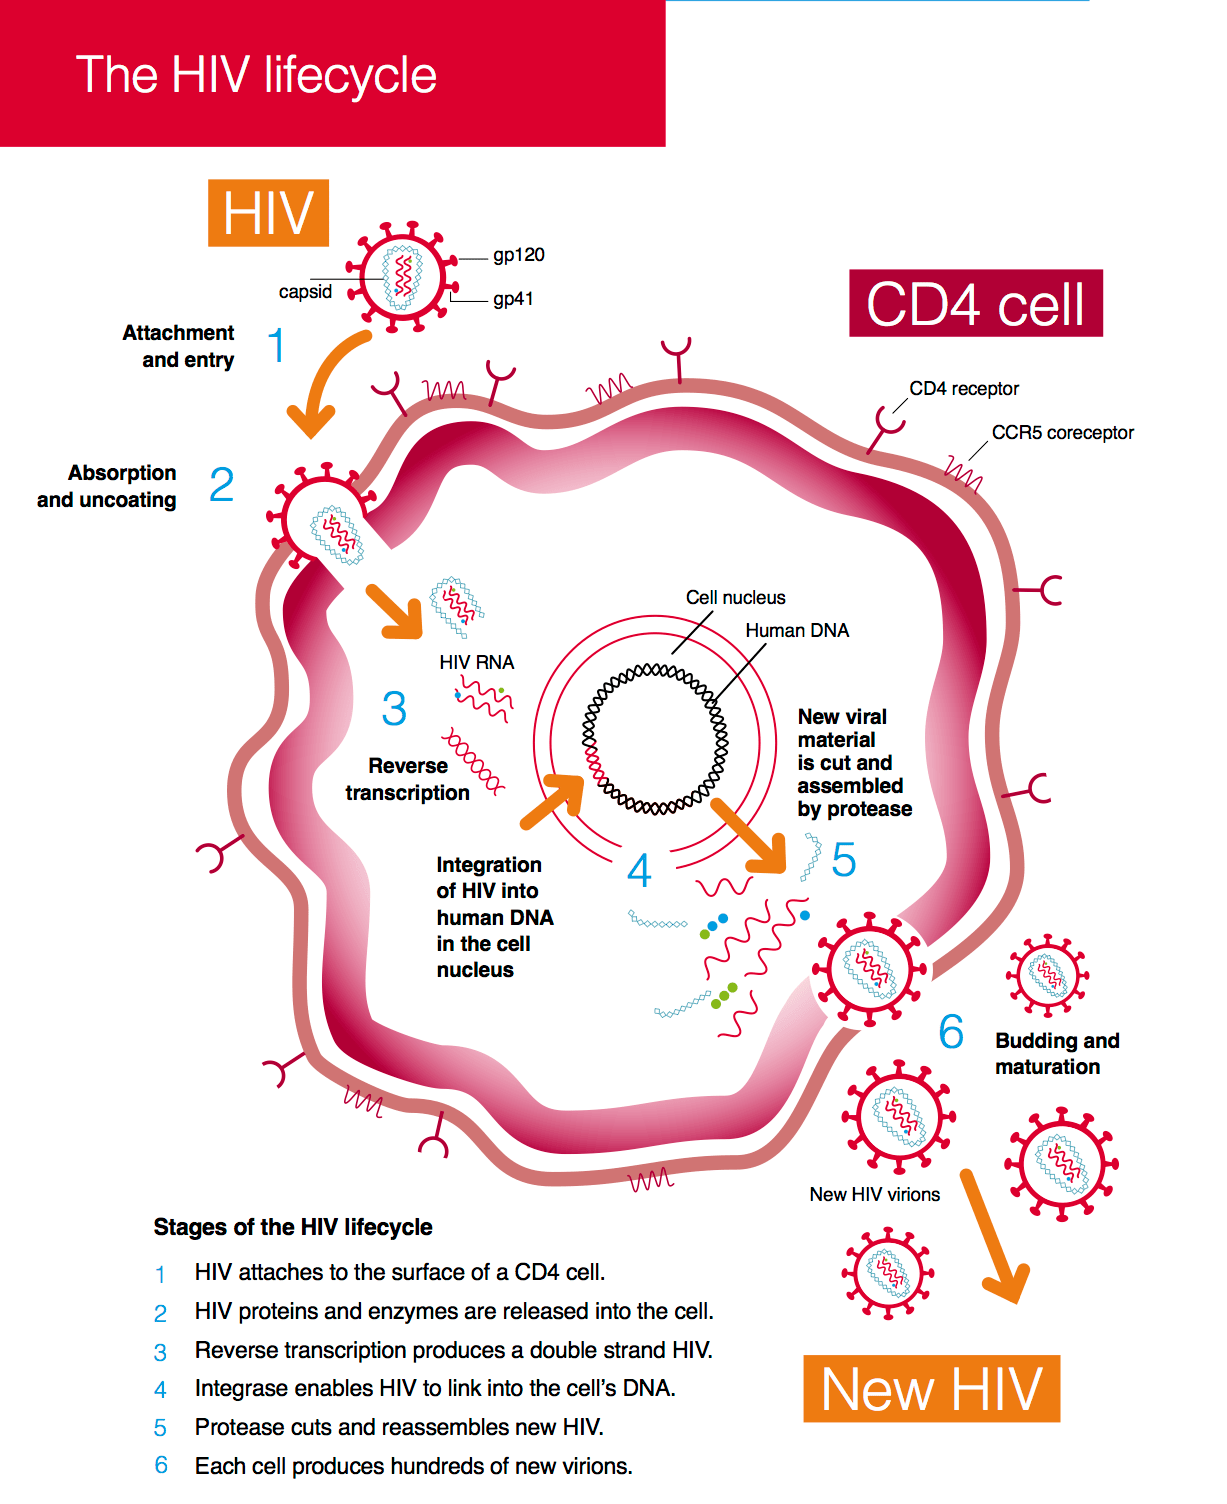 The Hiv Lifecycle